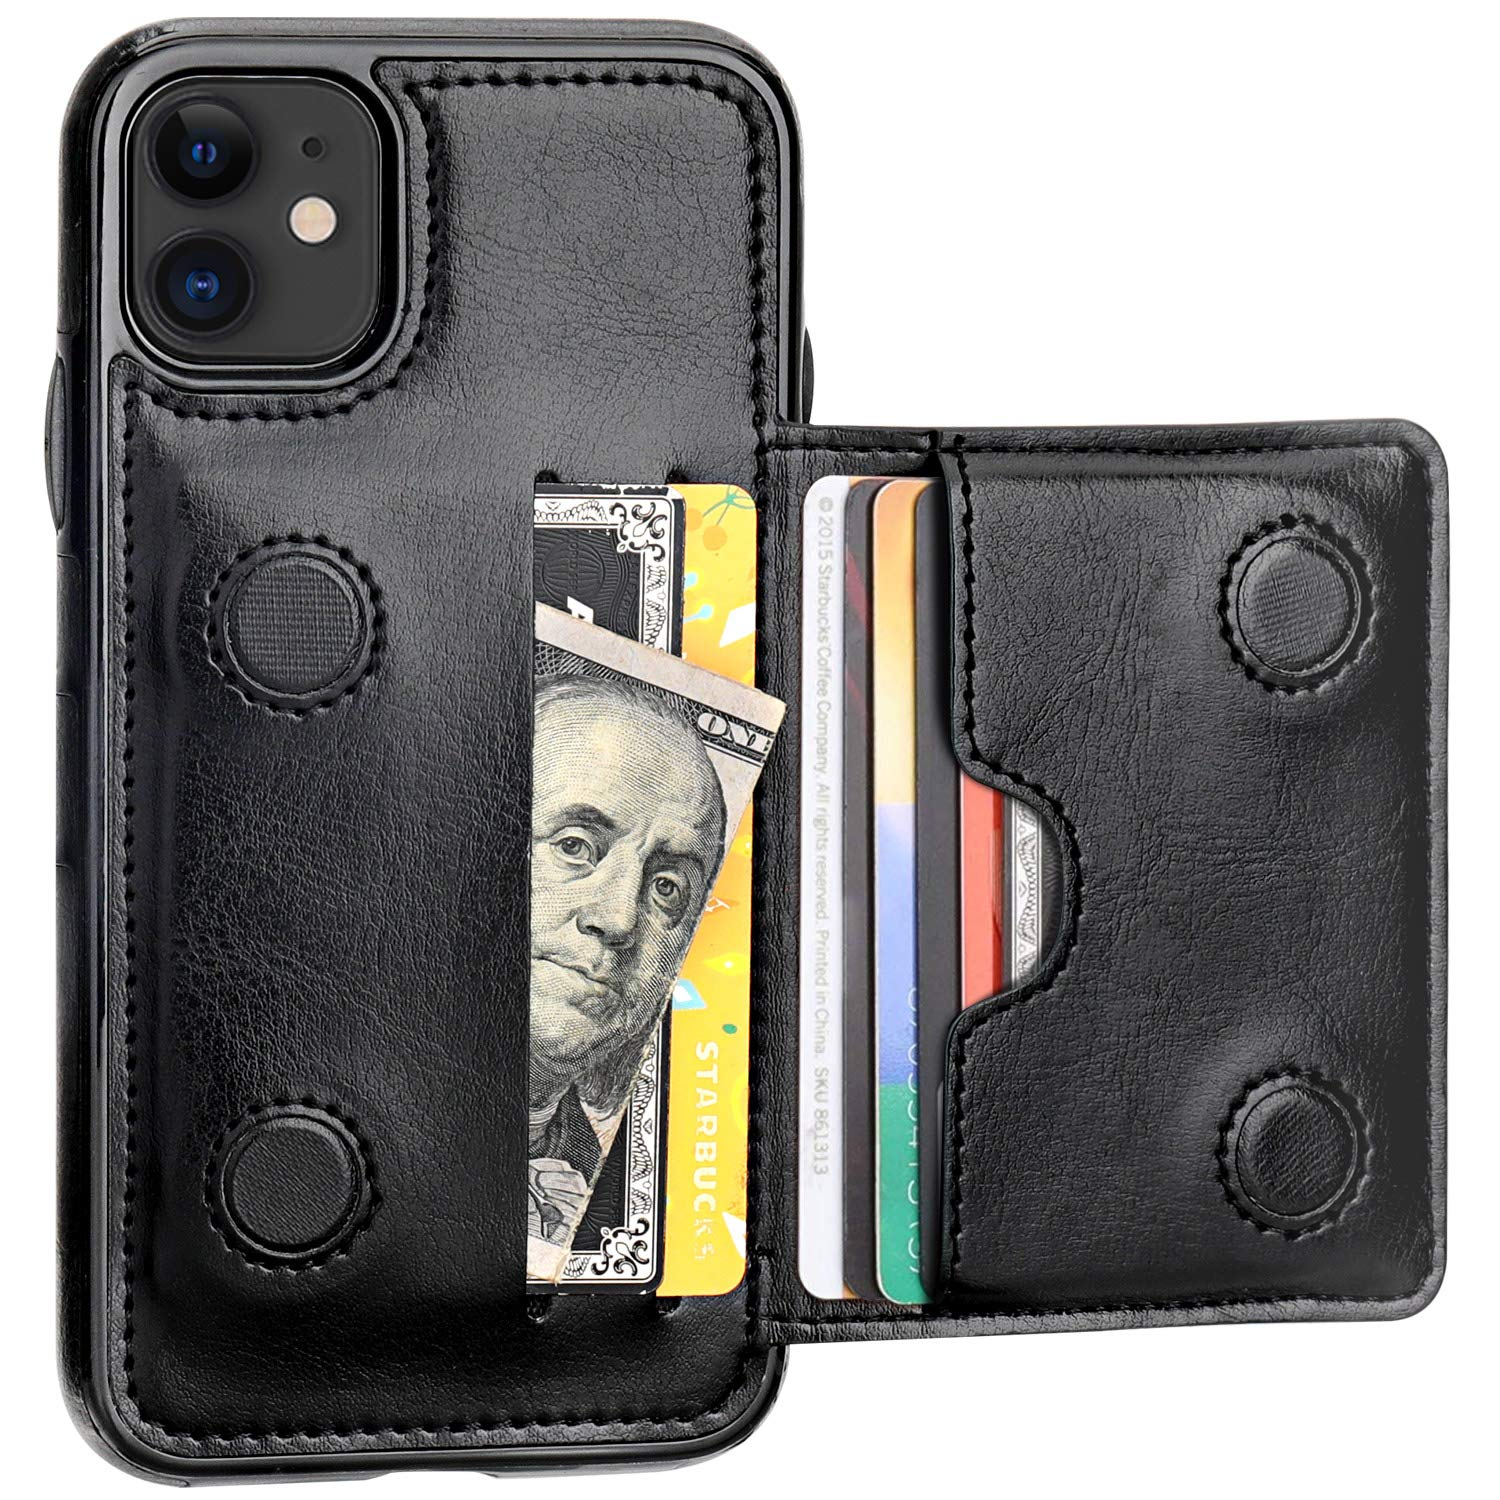 Premium leather kickstand wallet case by KIHUWEY for iPhone 11